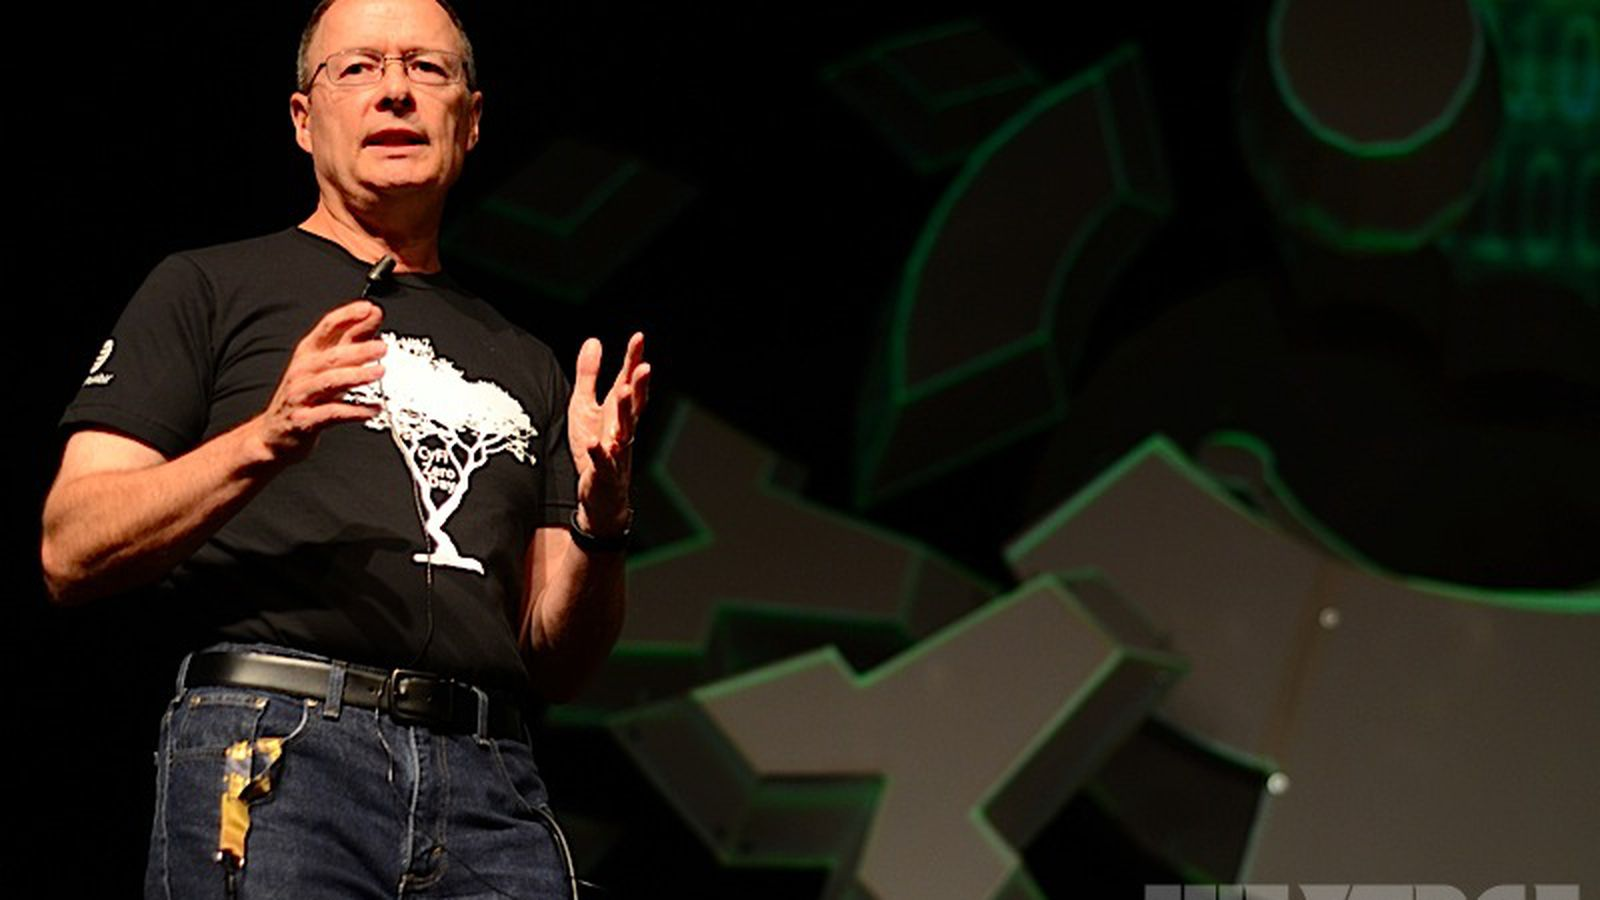 NSA trolls for talent at Def Con, the nation's largest hacker conference